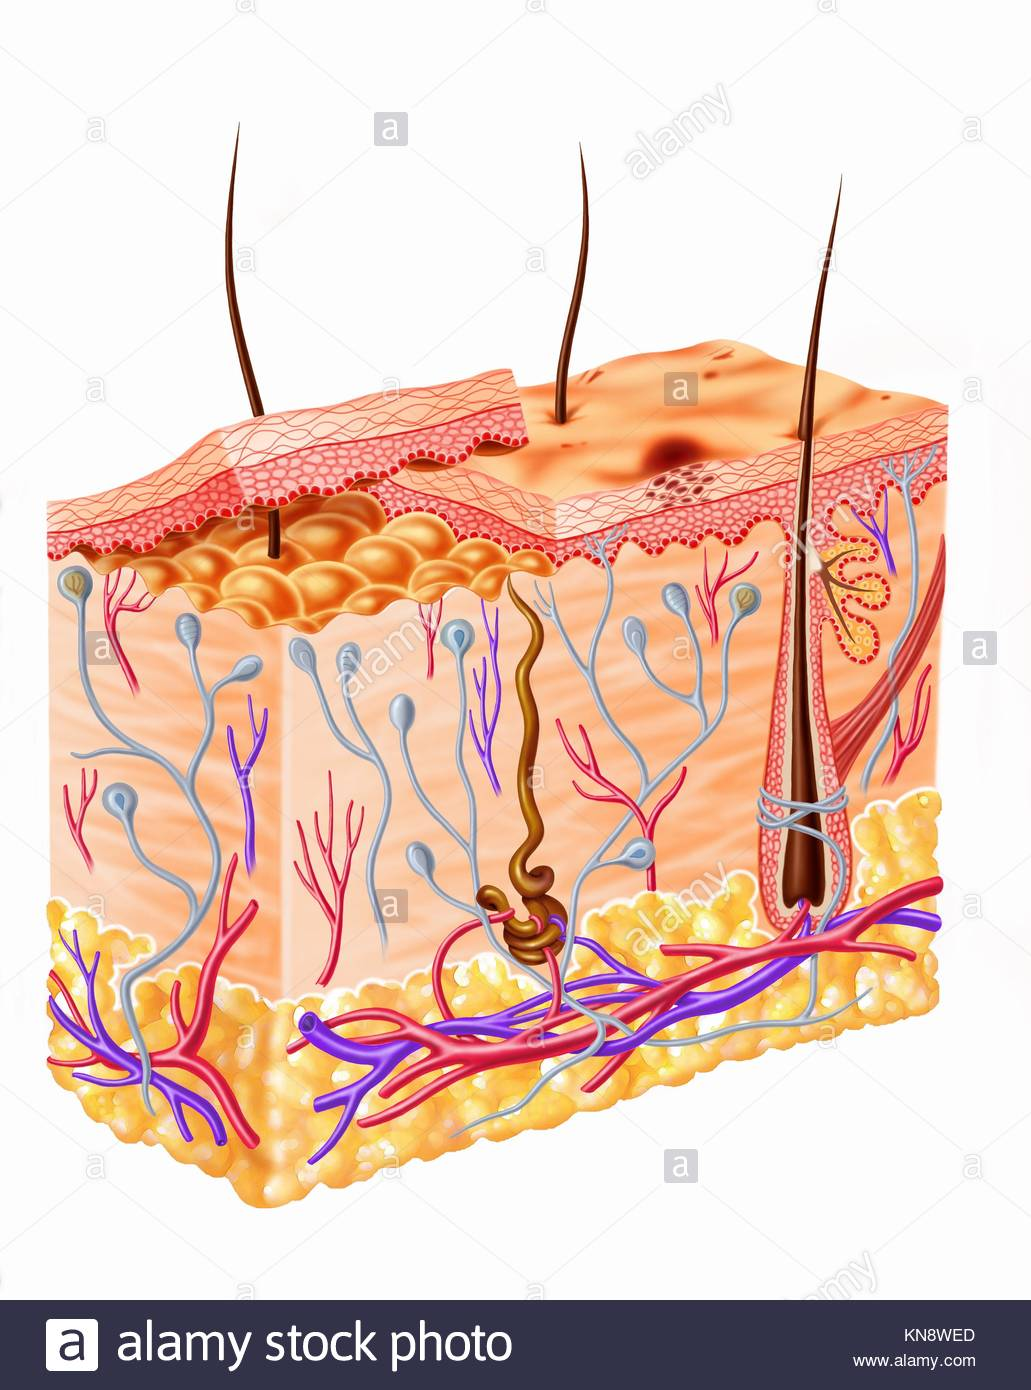 Human skin section diagram. - Stock Image